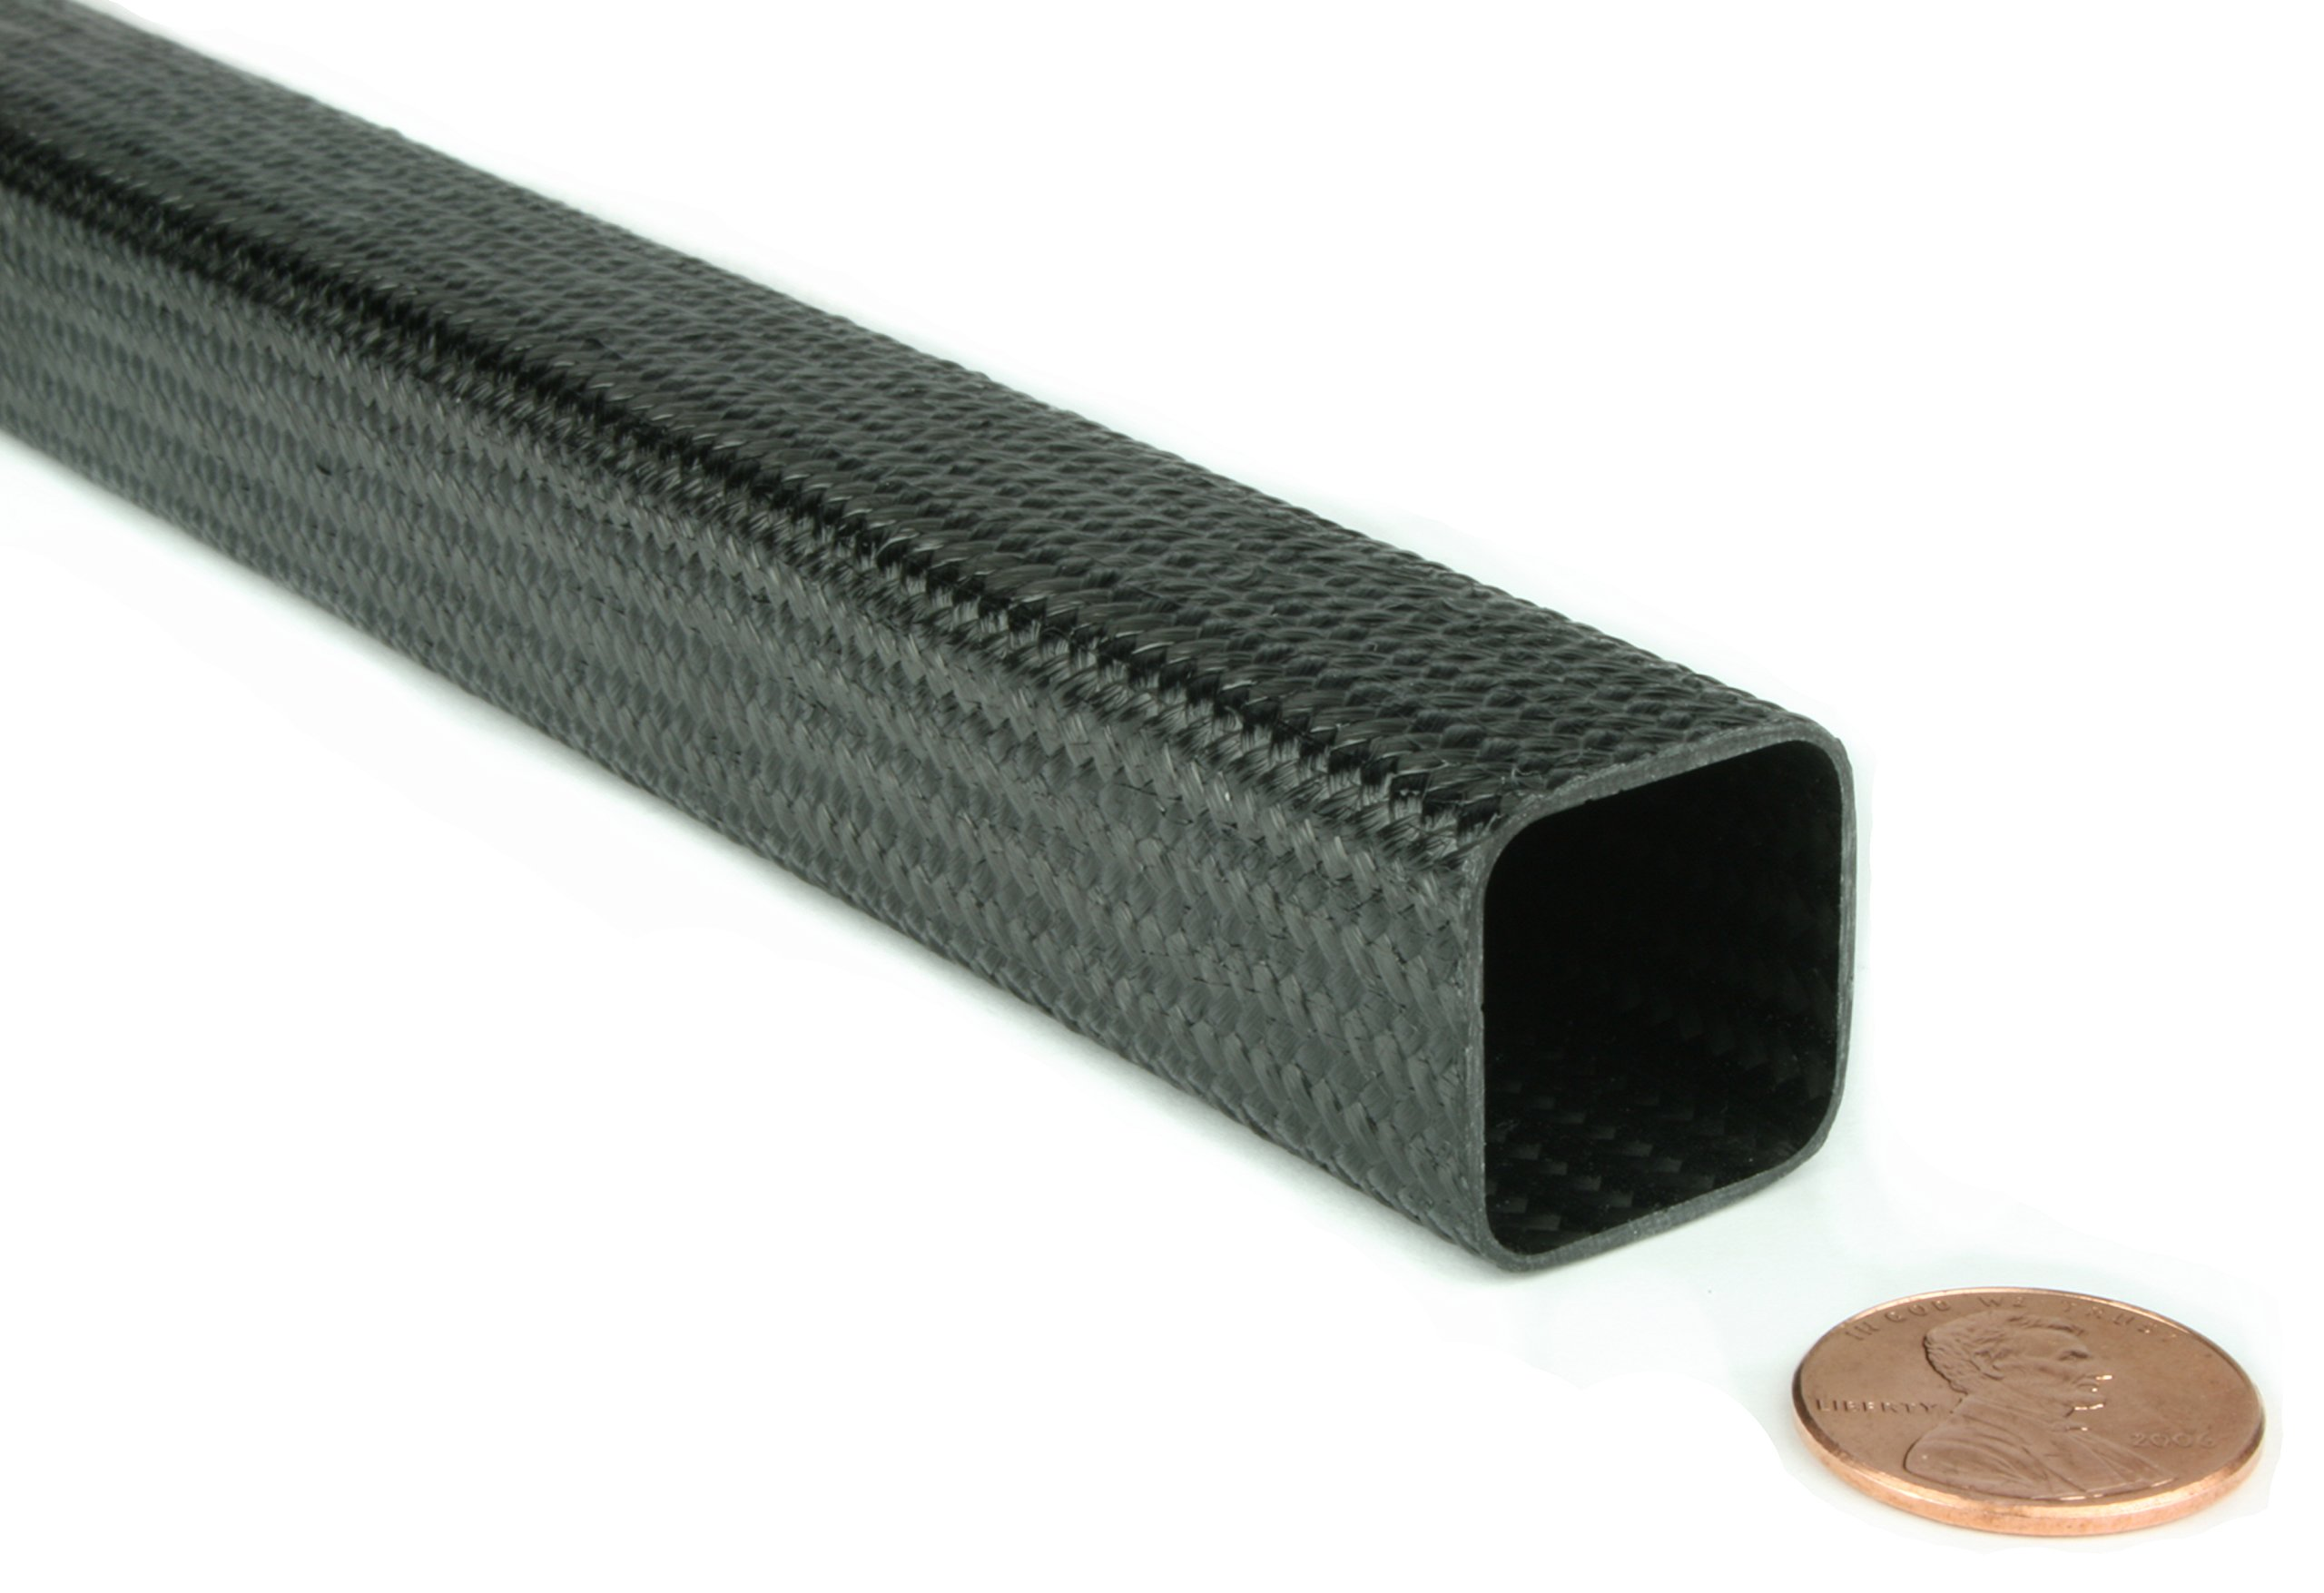 Braided Carbon Fiber Square Tubing - 0.75'' ID x 0.75'' ID x 96'' by DragonPlate